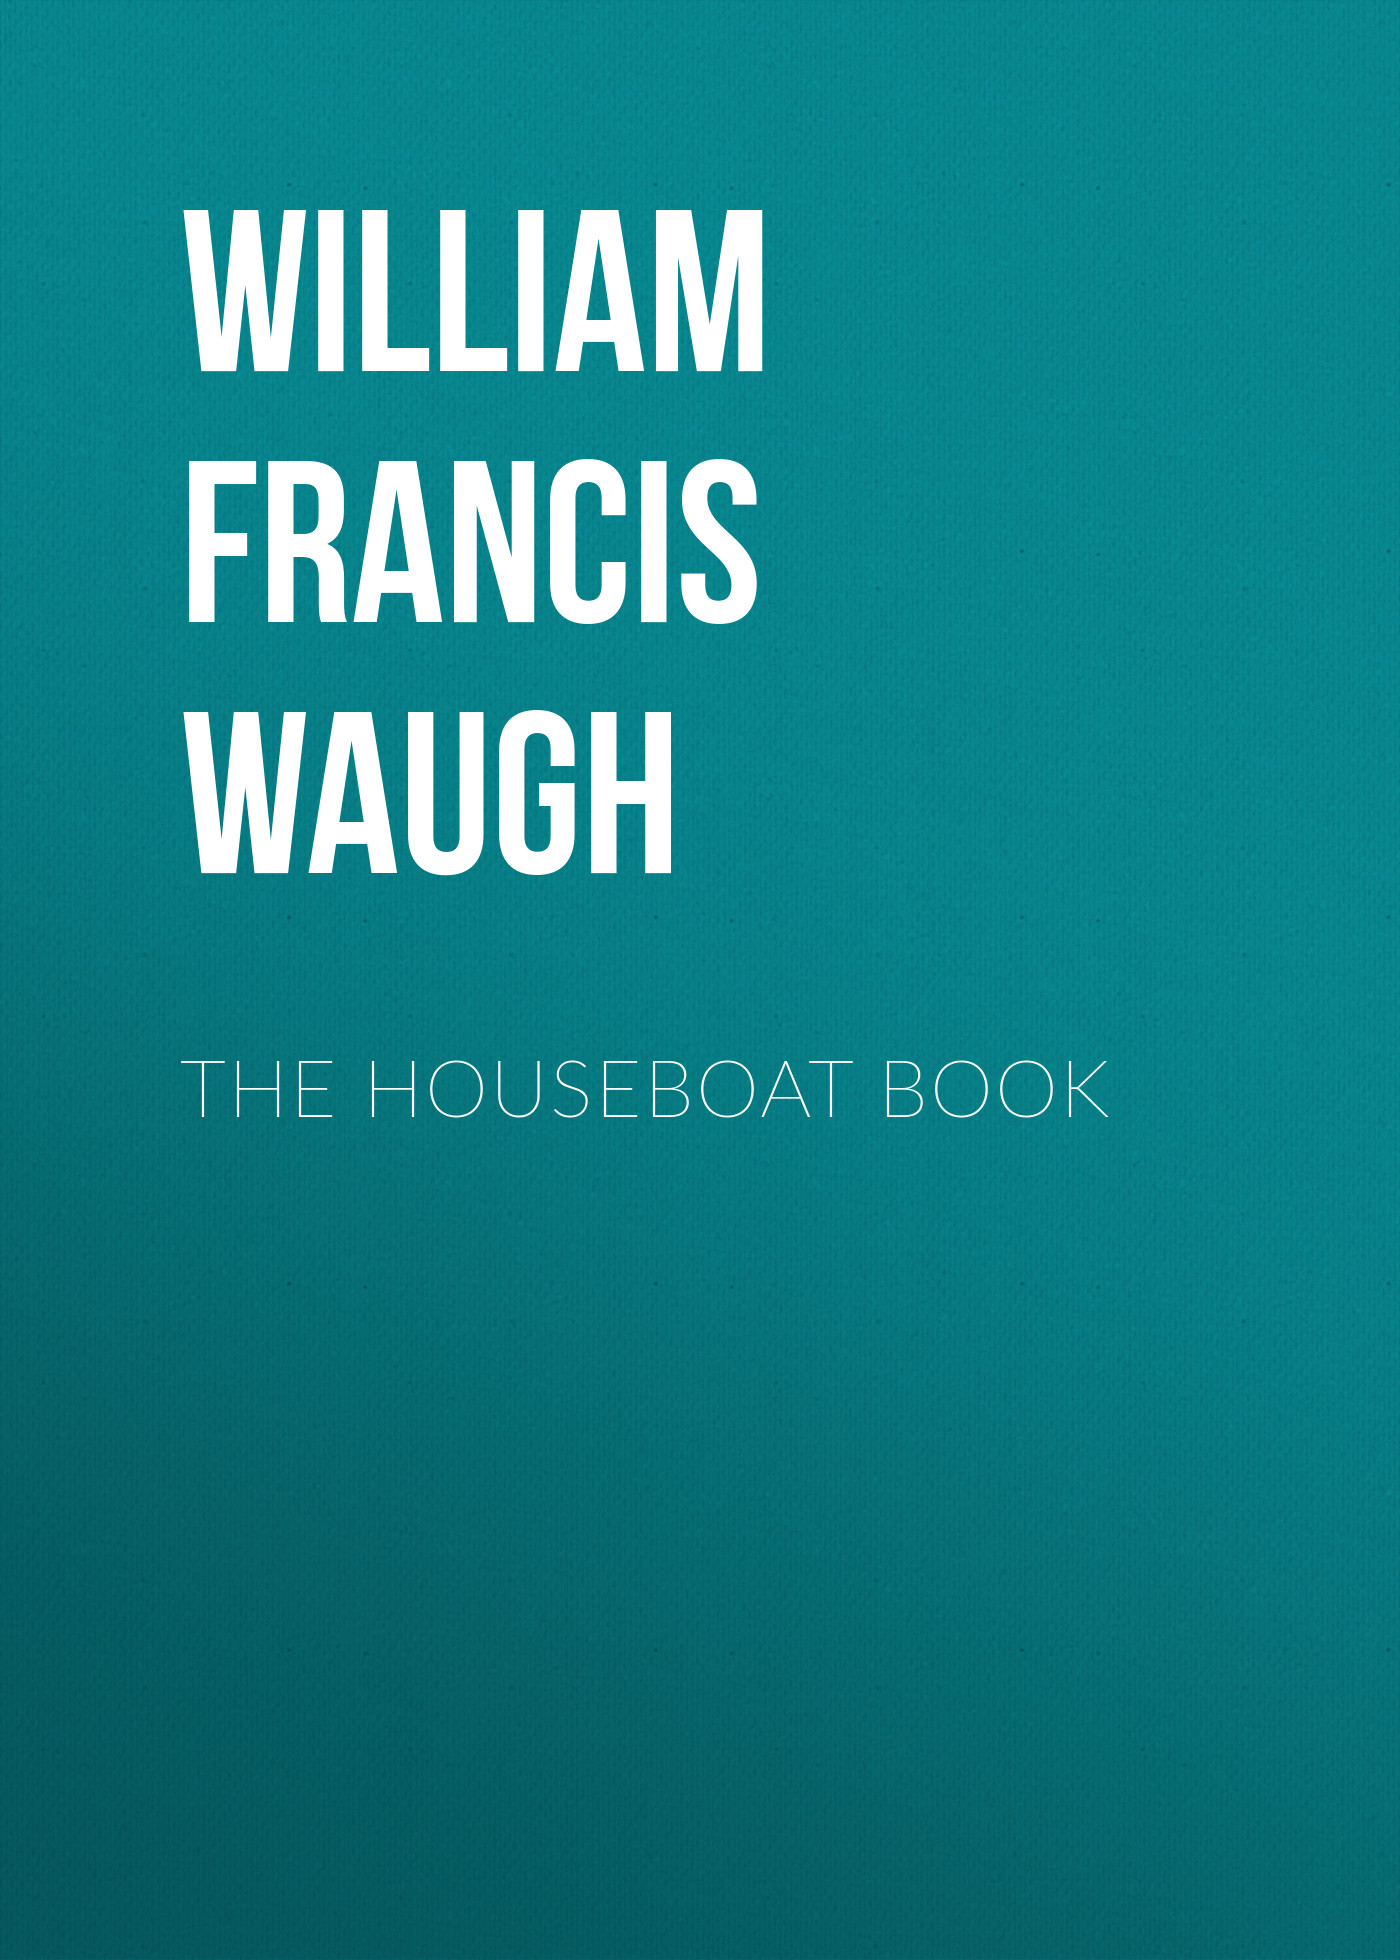 William Francis Waugh The houseboat book купить в Москве 2019